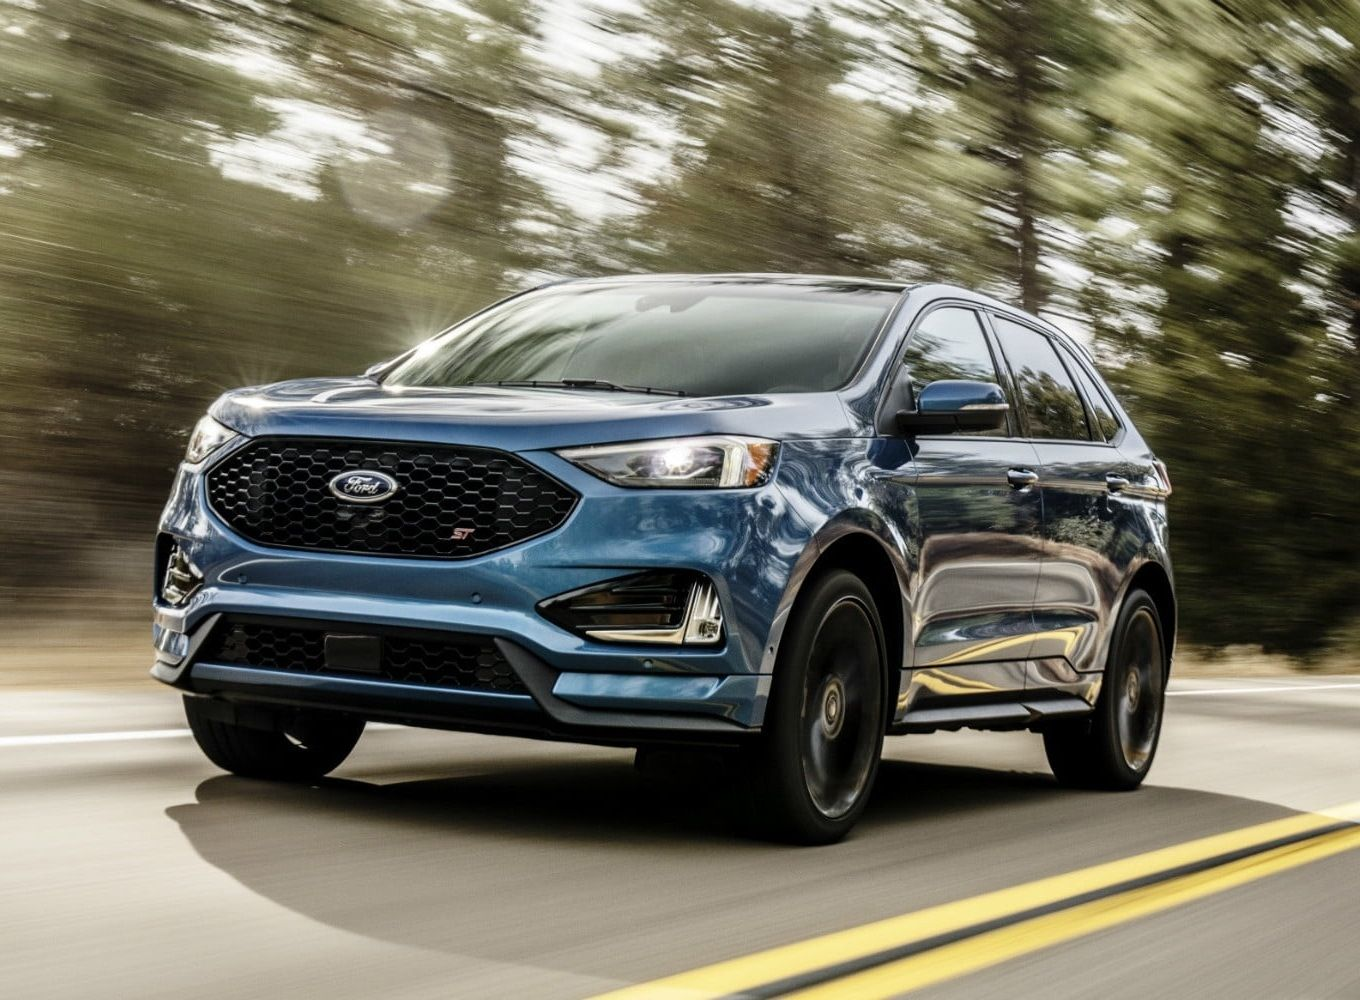 Ford Edge 2020 Exterior And Interior Review With Images Ford